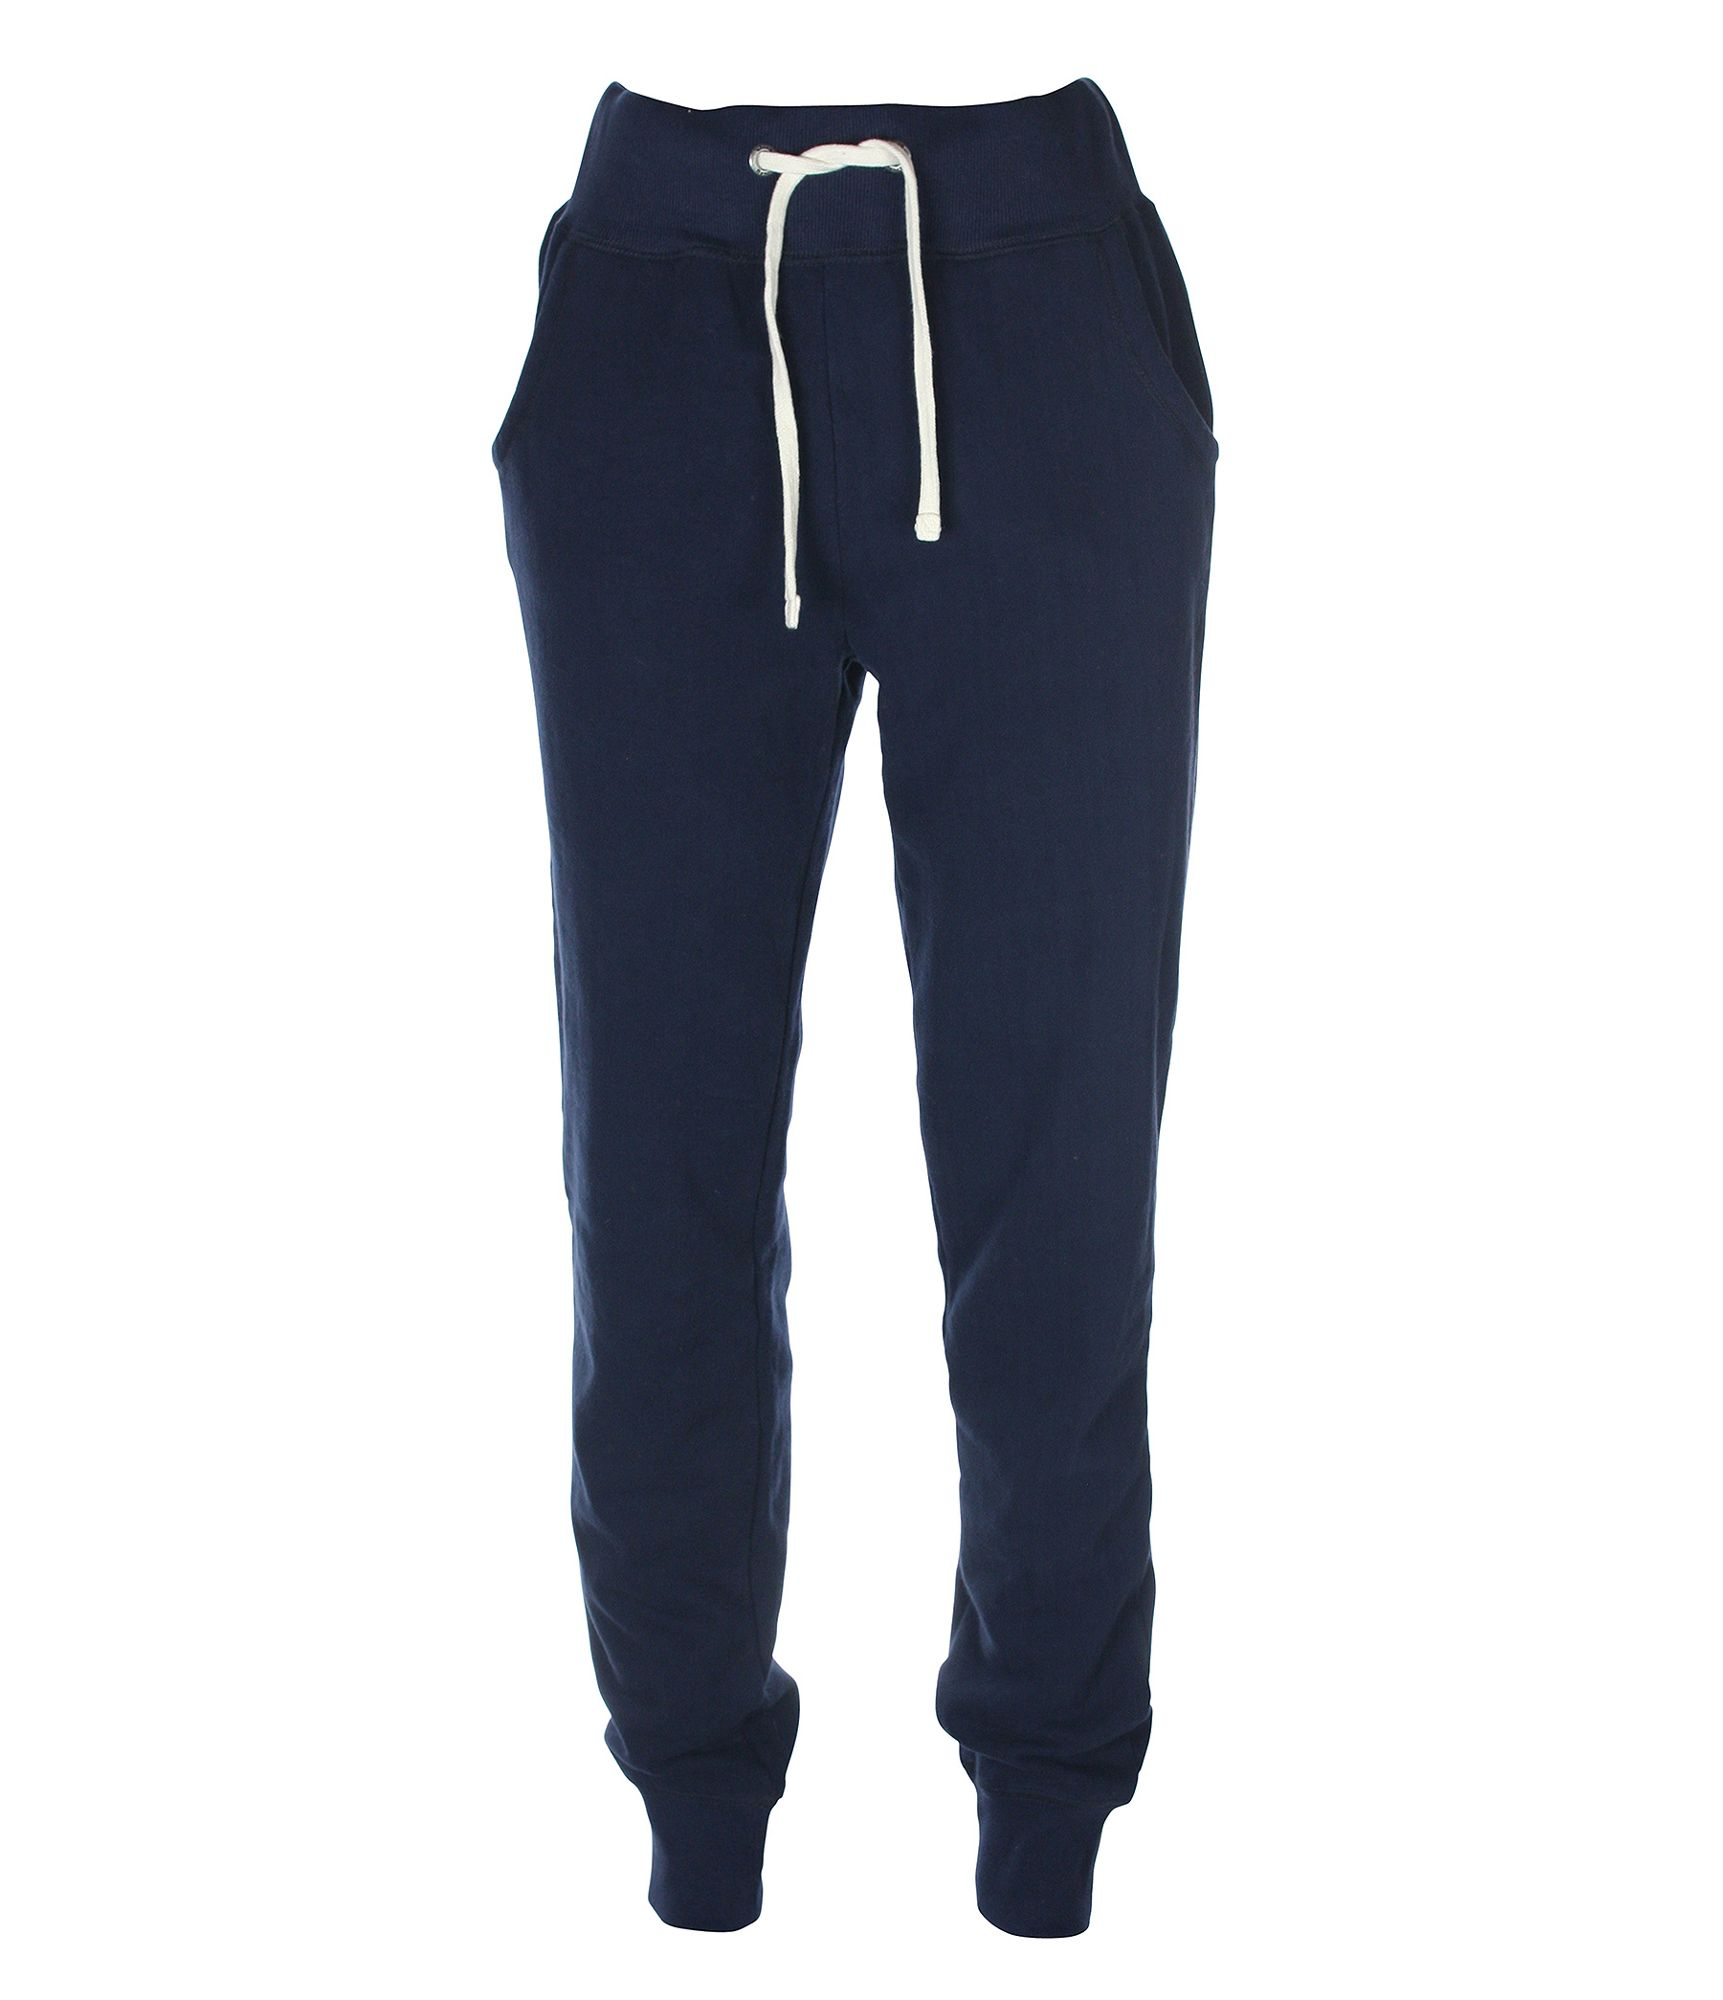 Lastest Bench Woven Jogging Pant With Side Pannel Buy And Offers On Dressinn